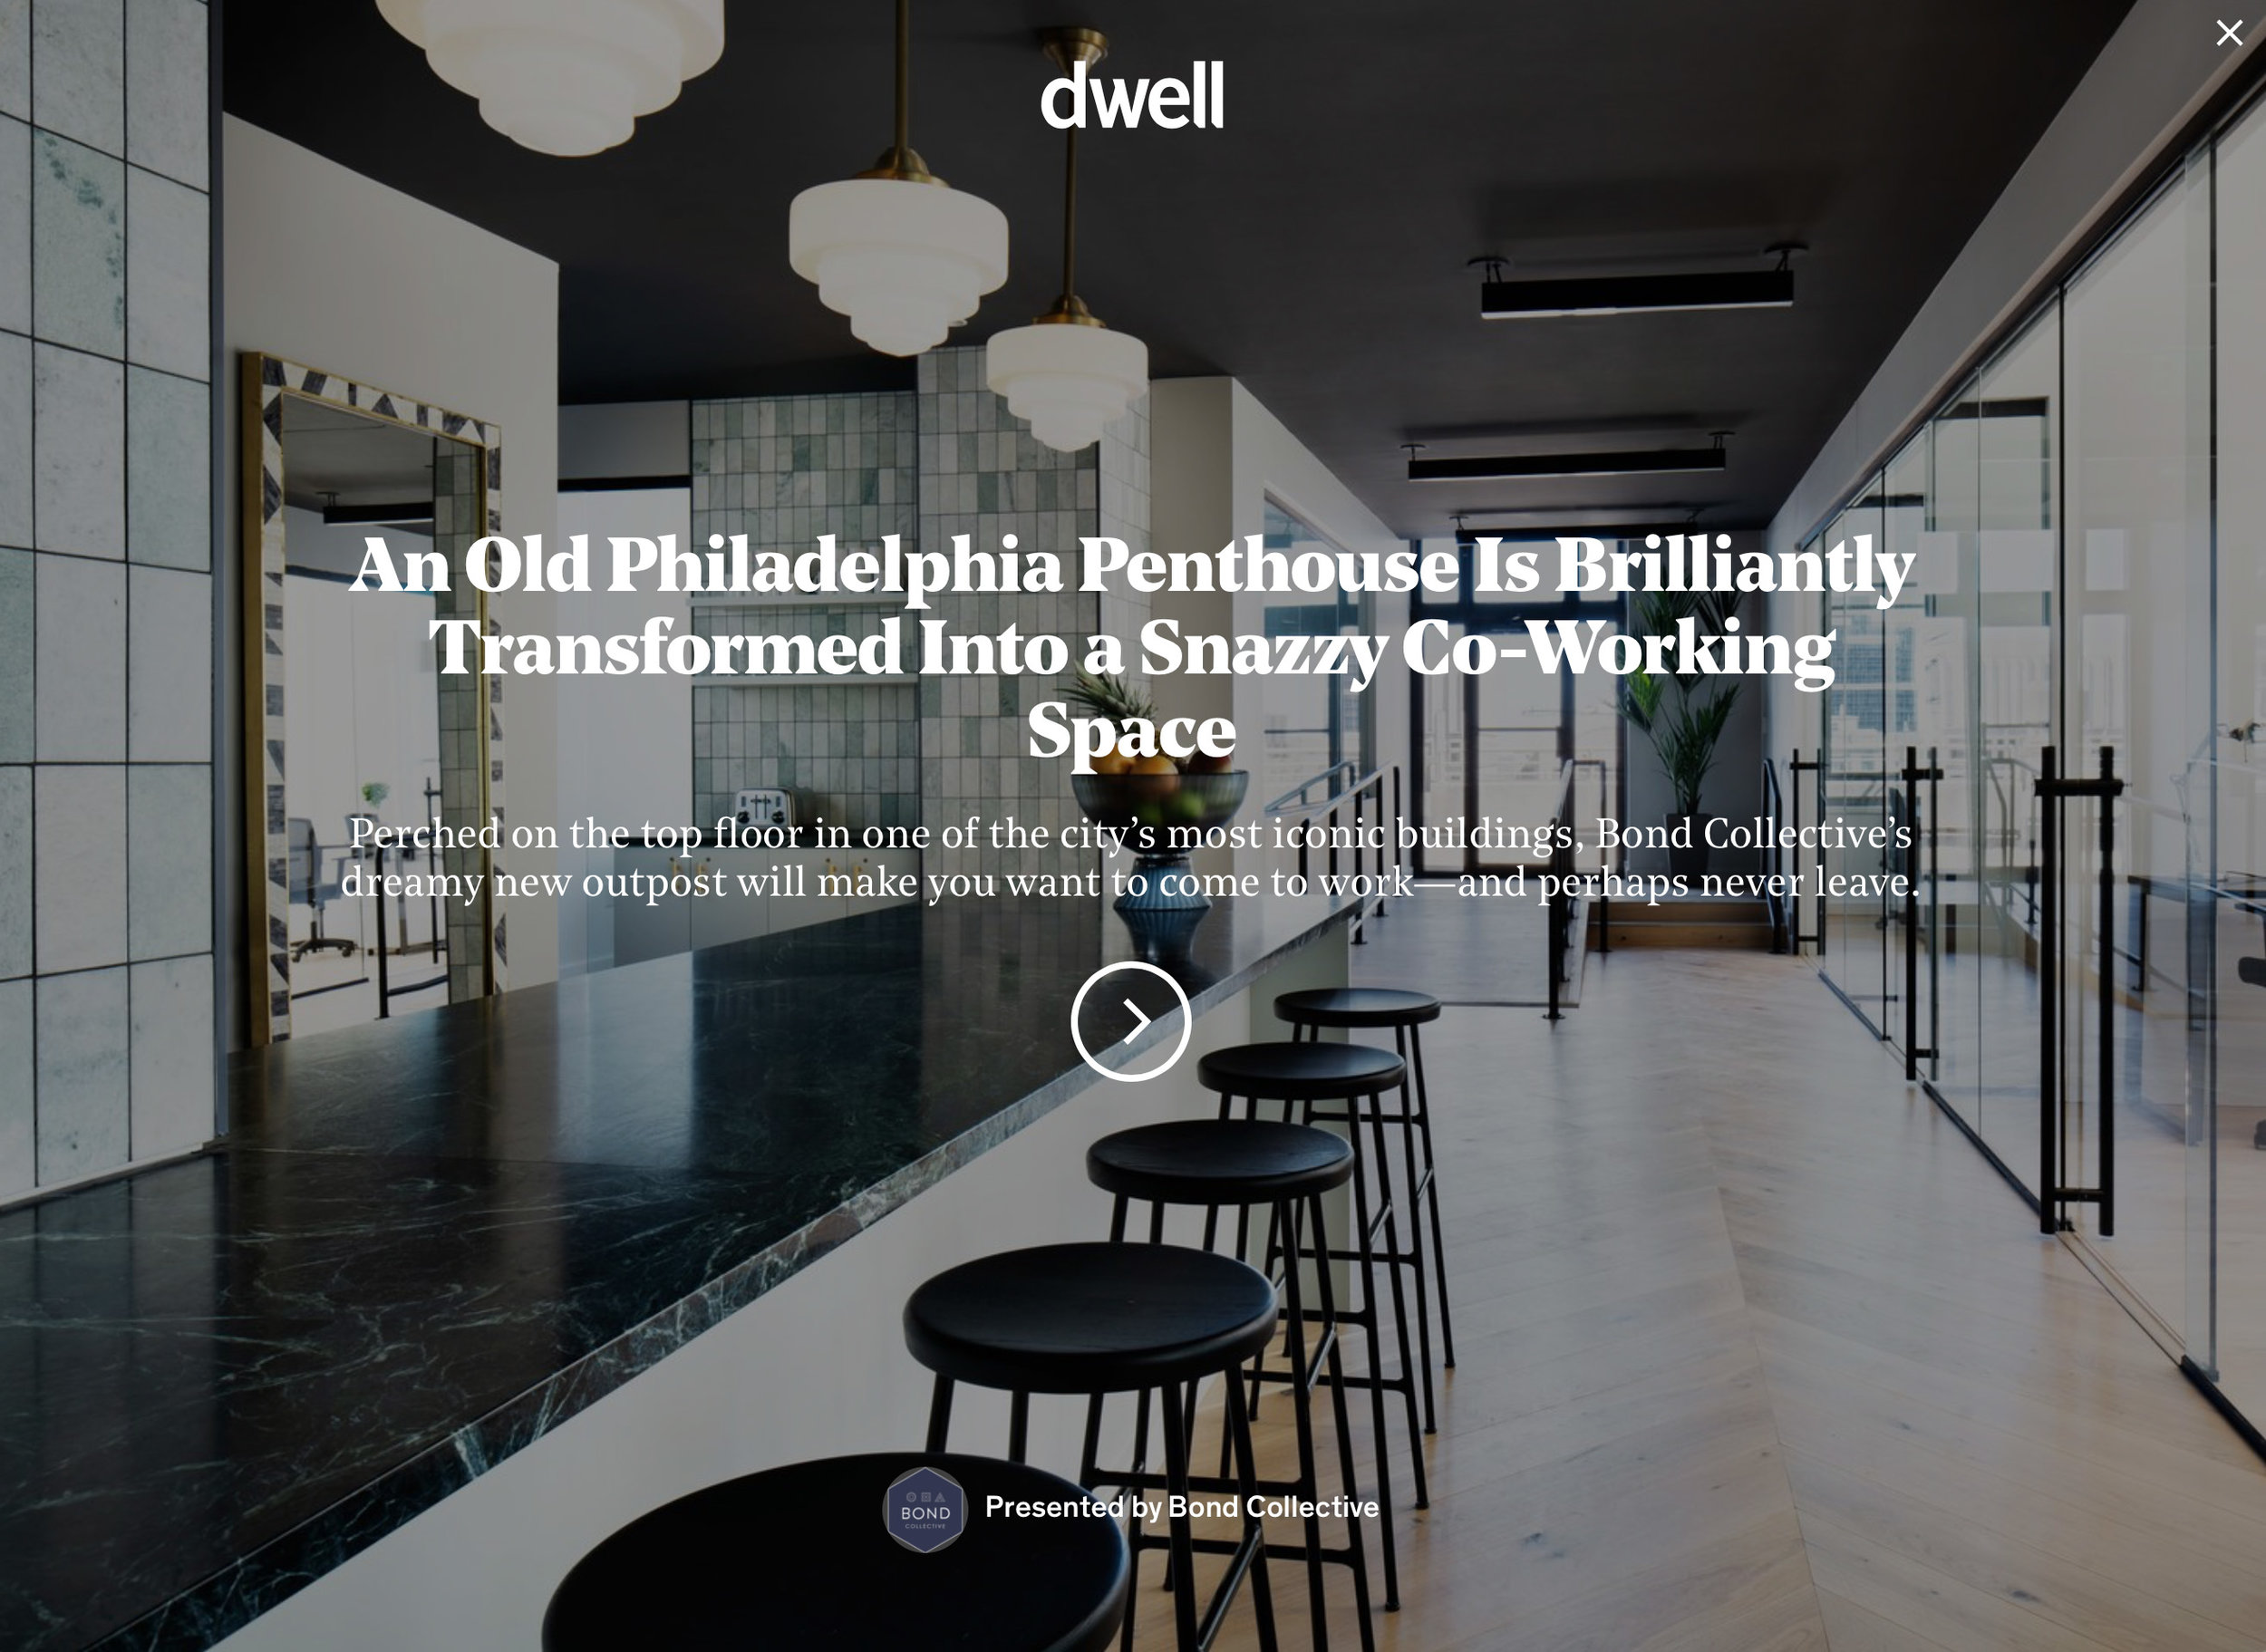 Dwell.com   An Old Philadelphia Penthouse Is Brilliantly Transformed Into a Snazzy Co-Working Space   Bond Collective